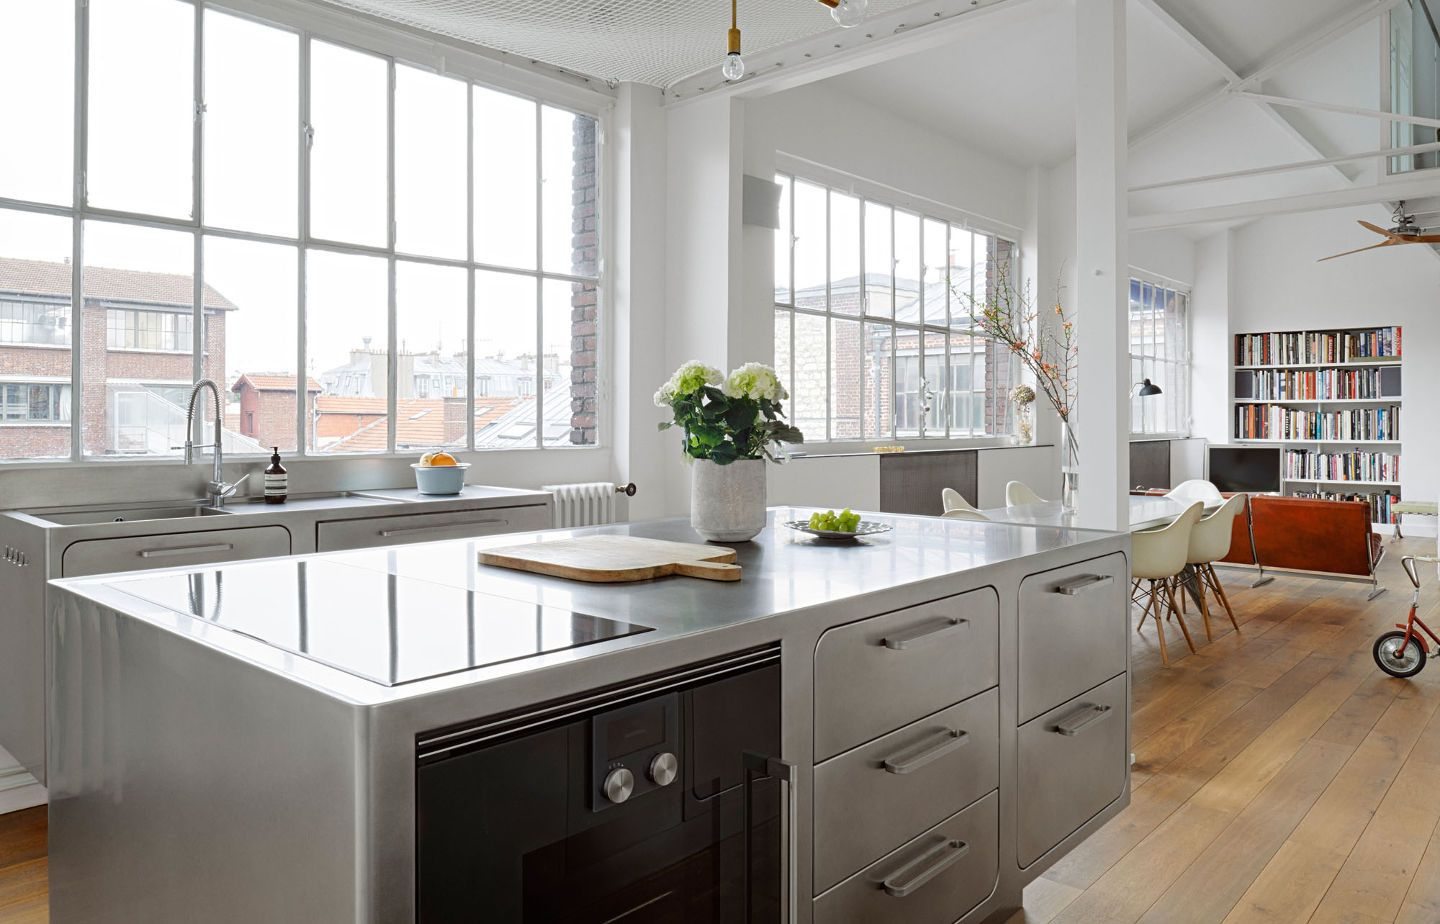 Sizzling Stainless Steel Kitchen Brings Home Professional Panache ...